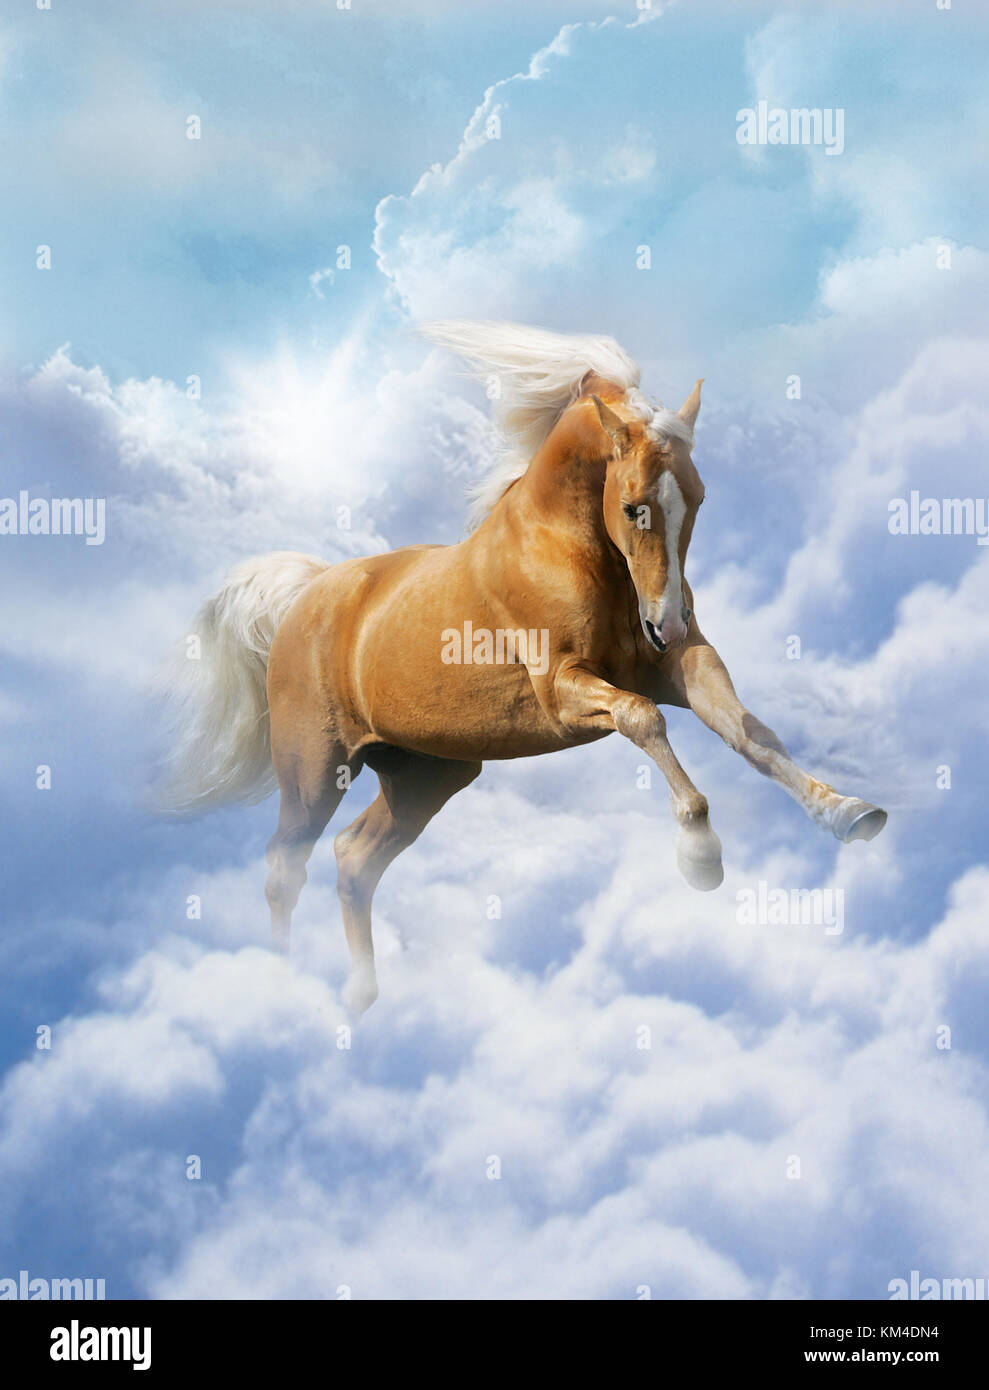 A palomino horse flying through the clouds - Stock Image